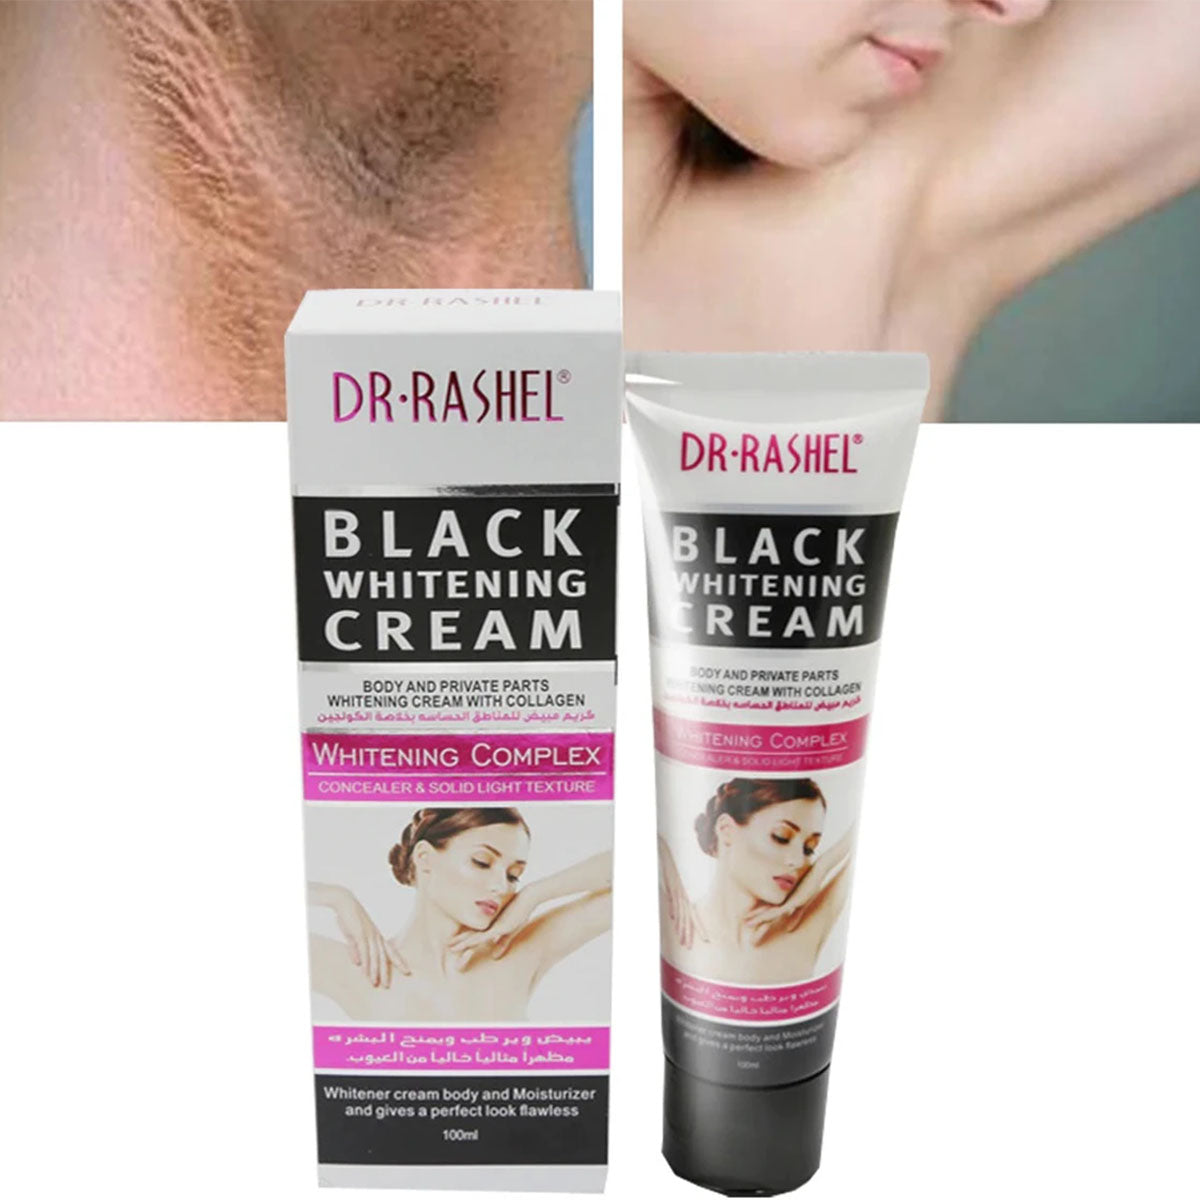 #1 Original Underarm Cream